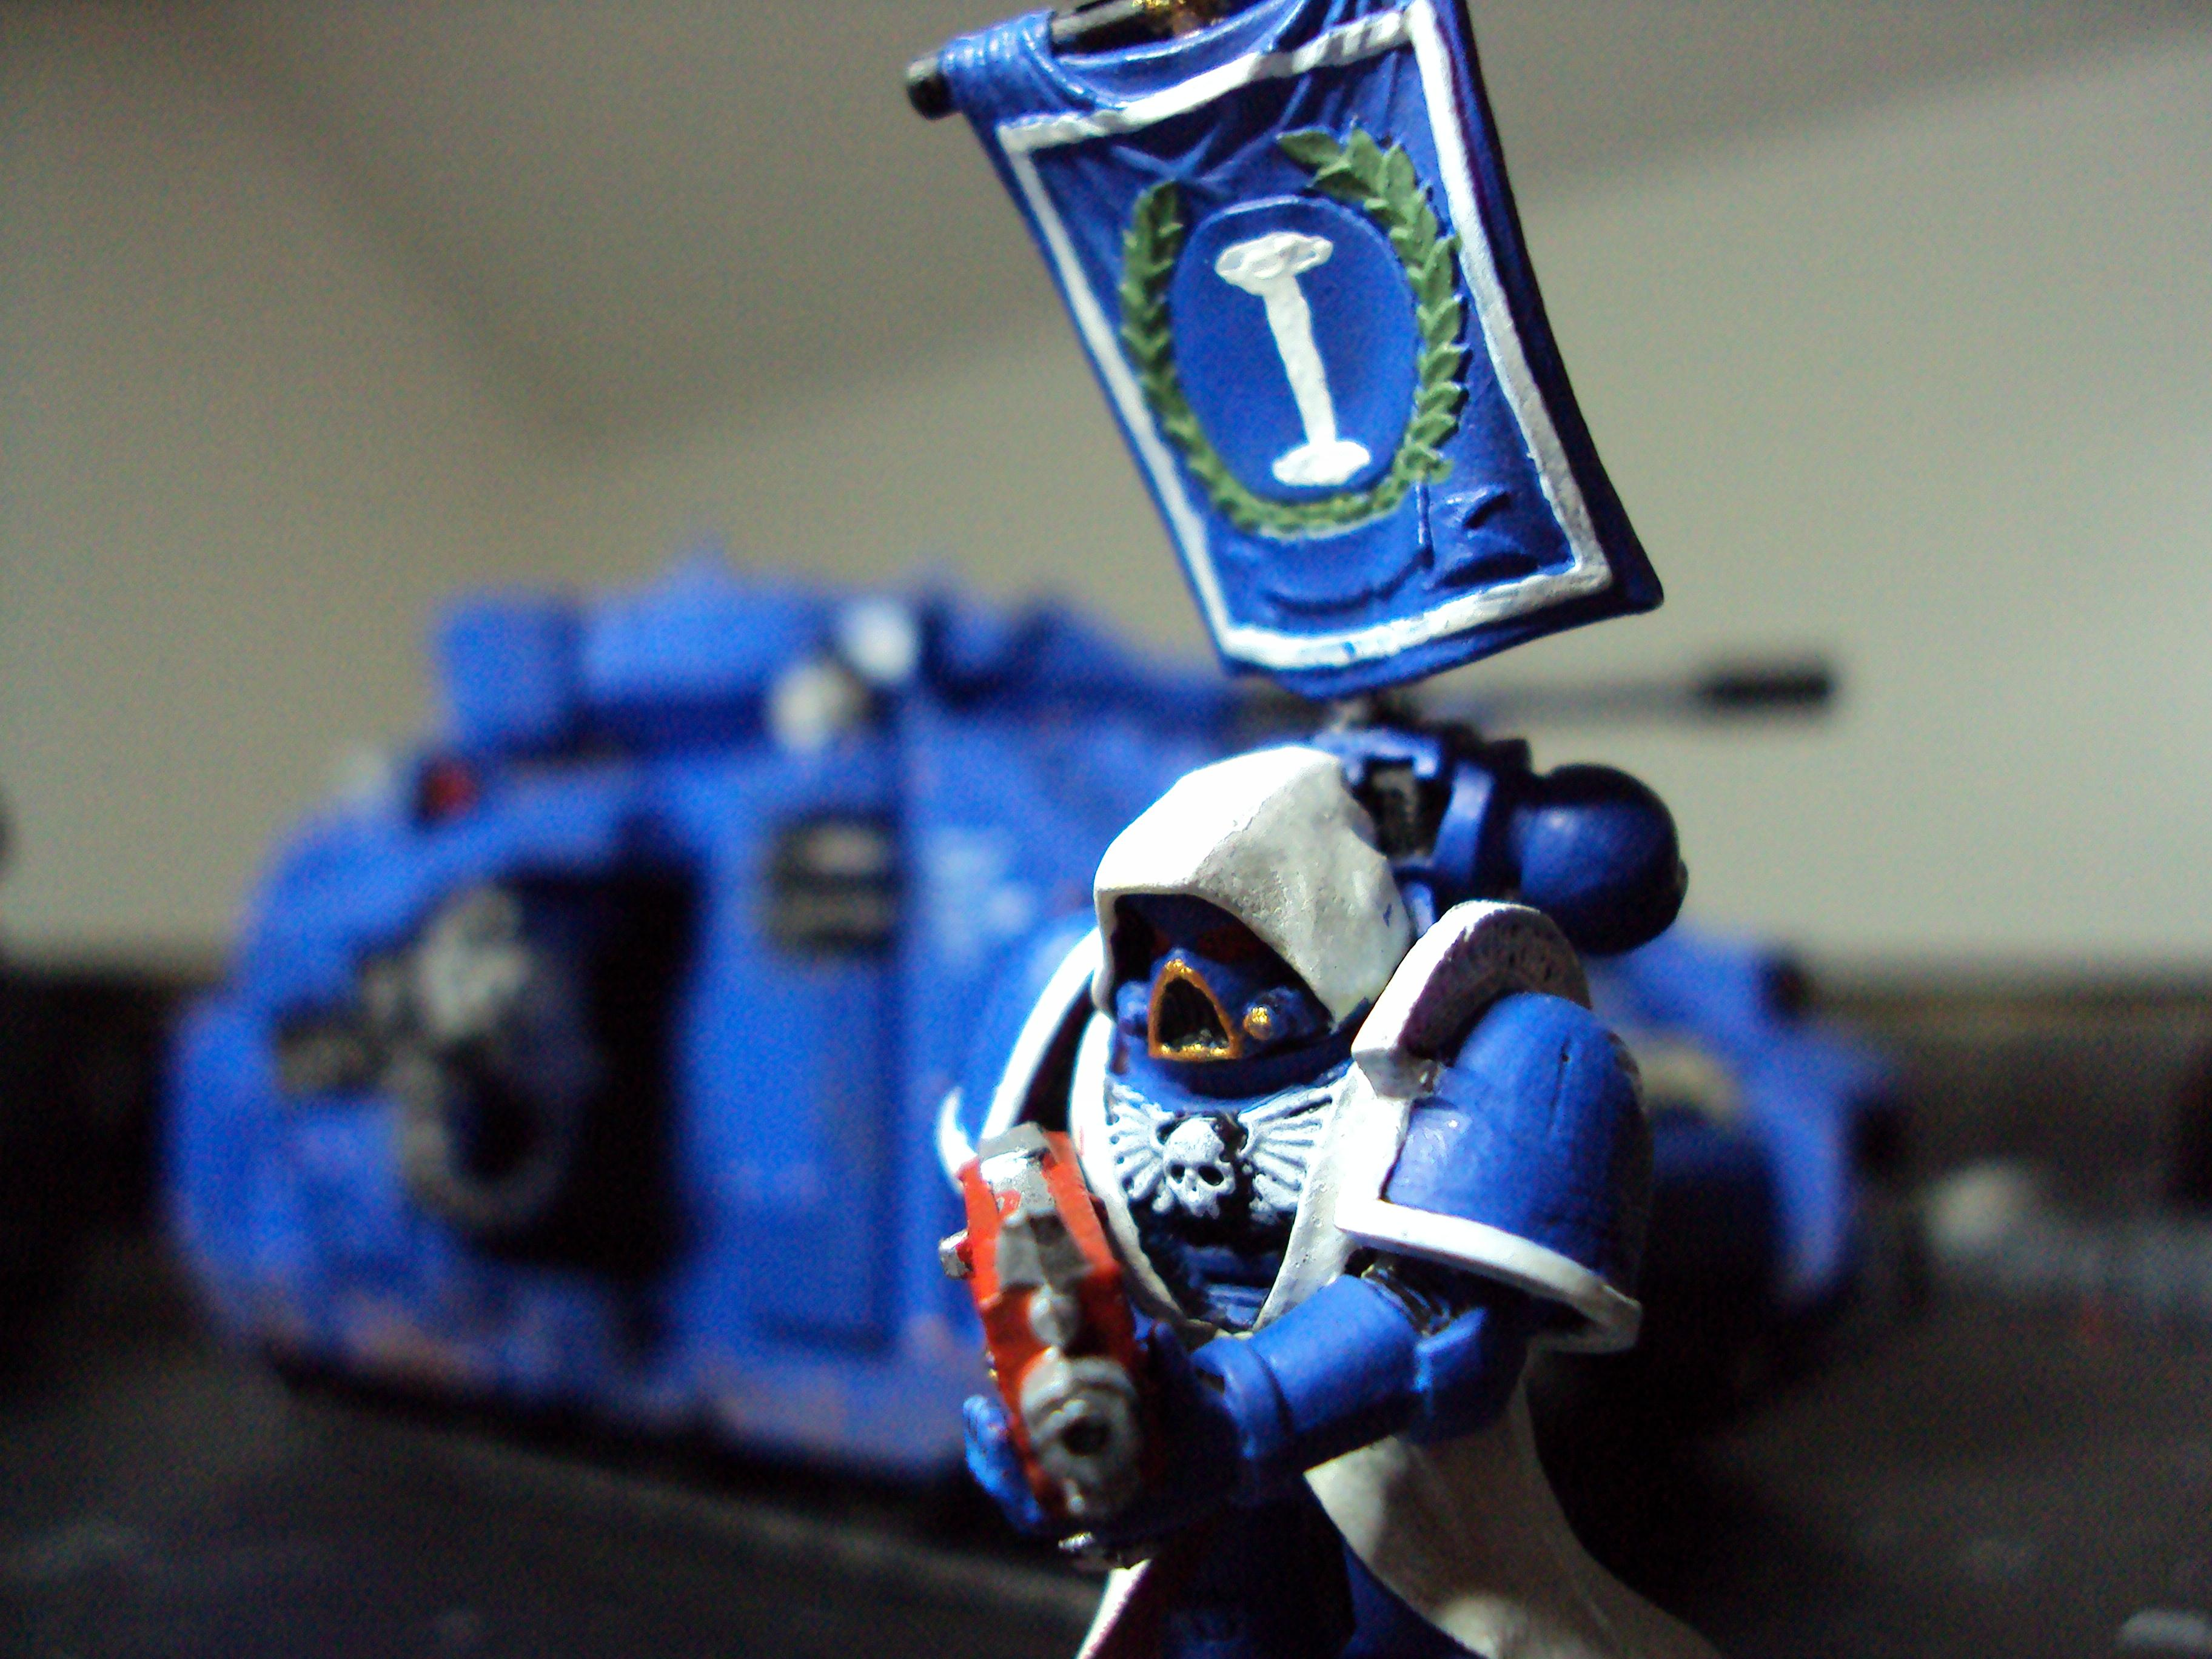 a simple conversion job i did for some extra cheap sternguards